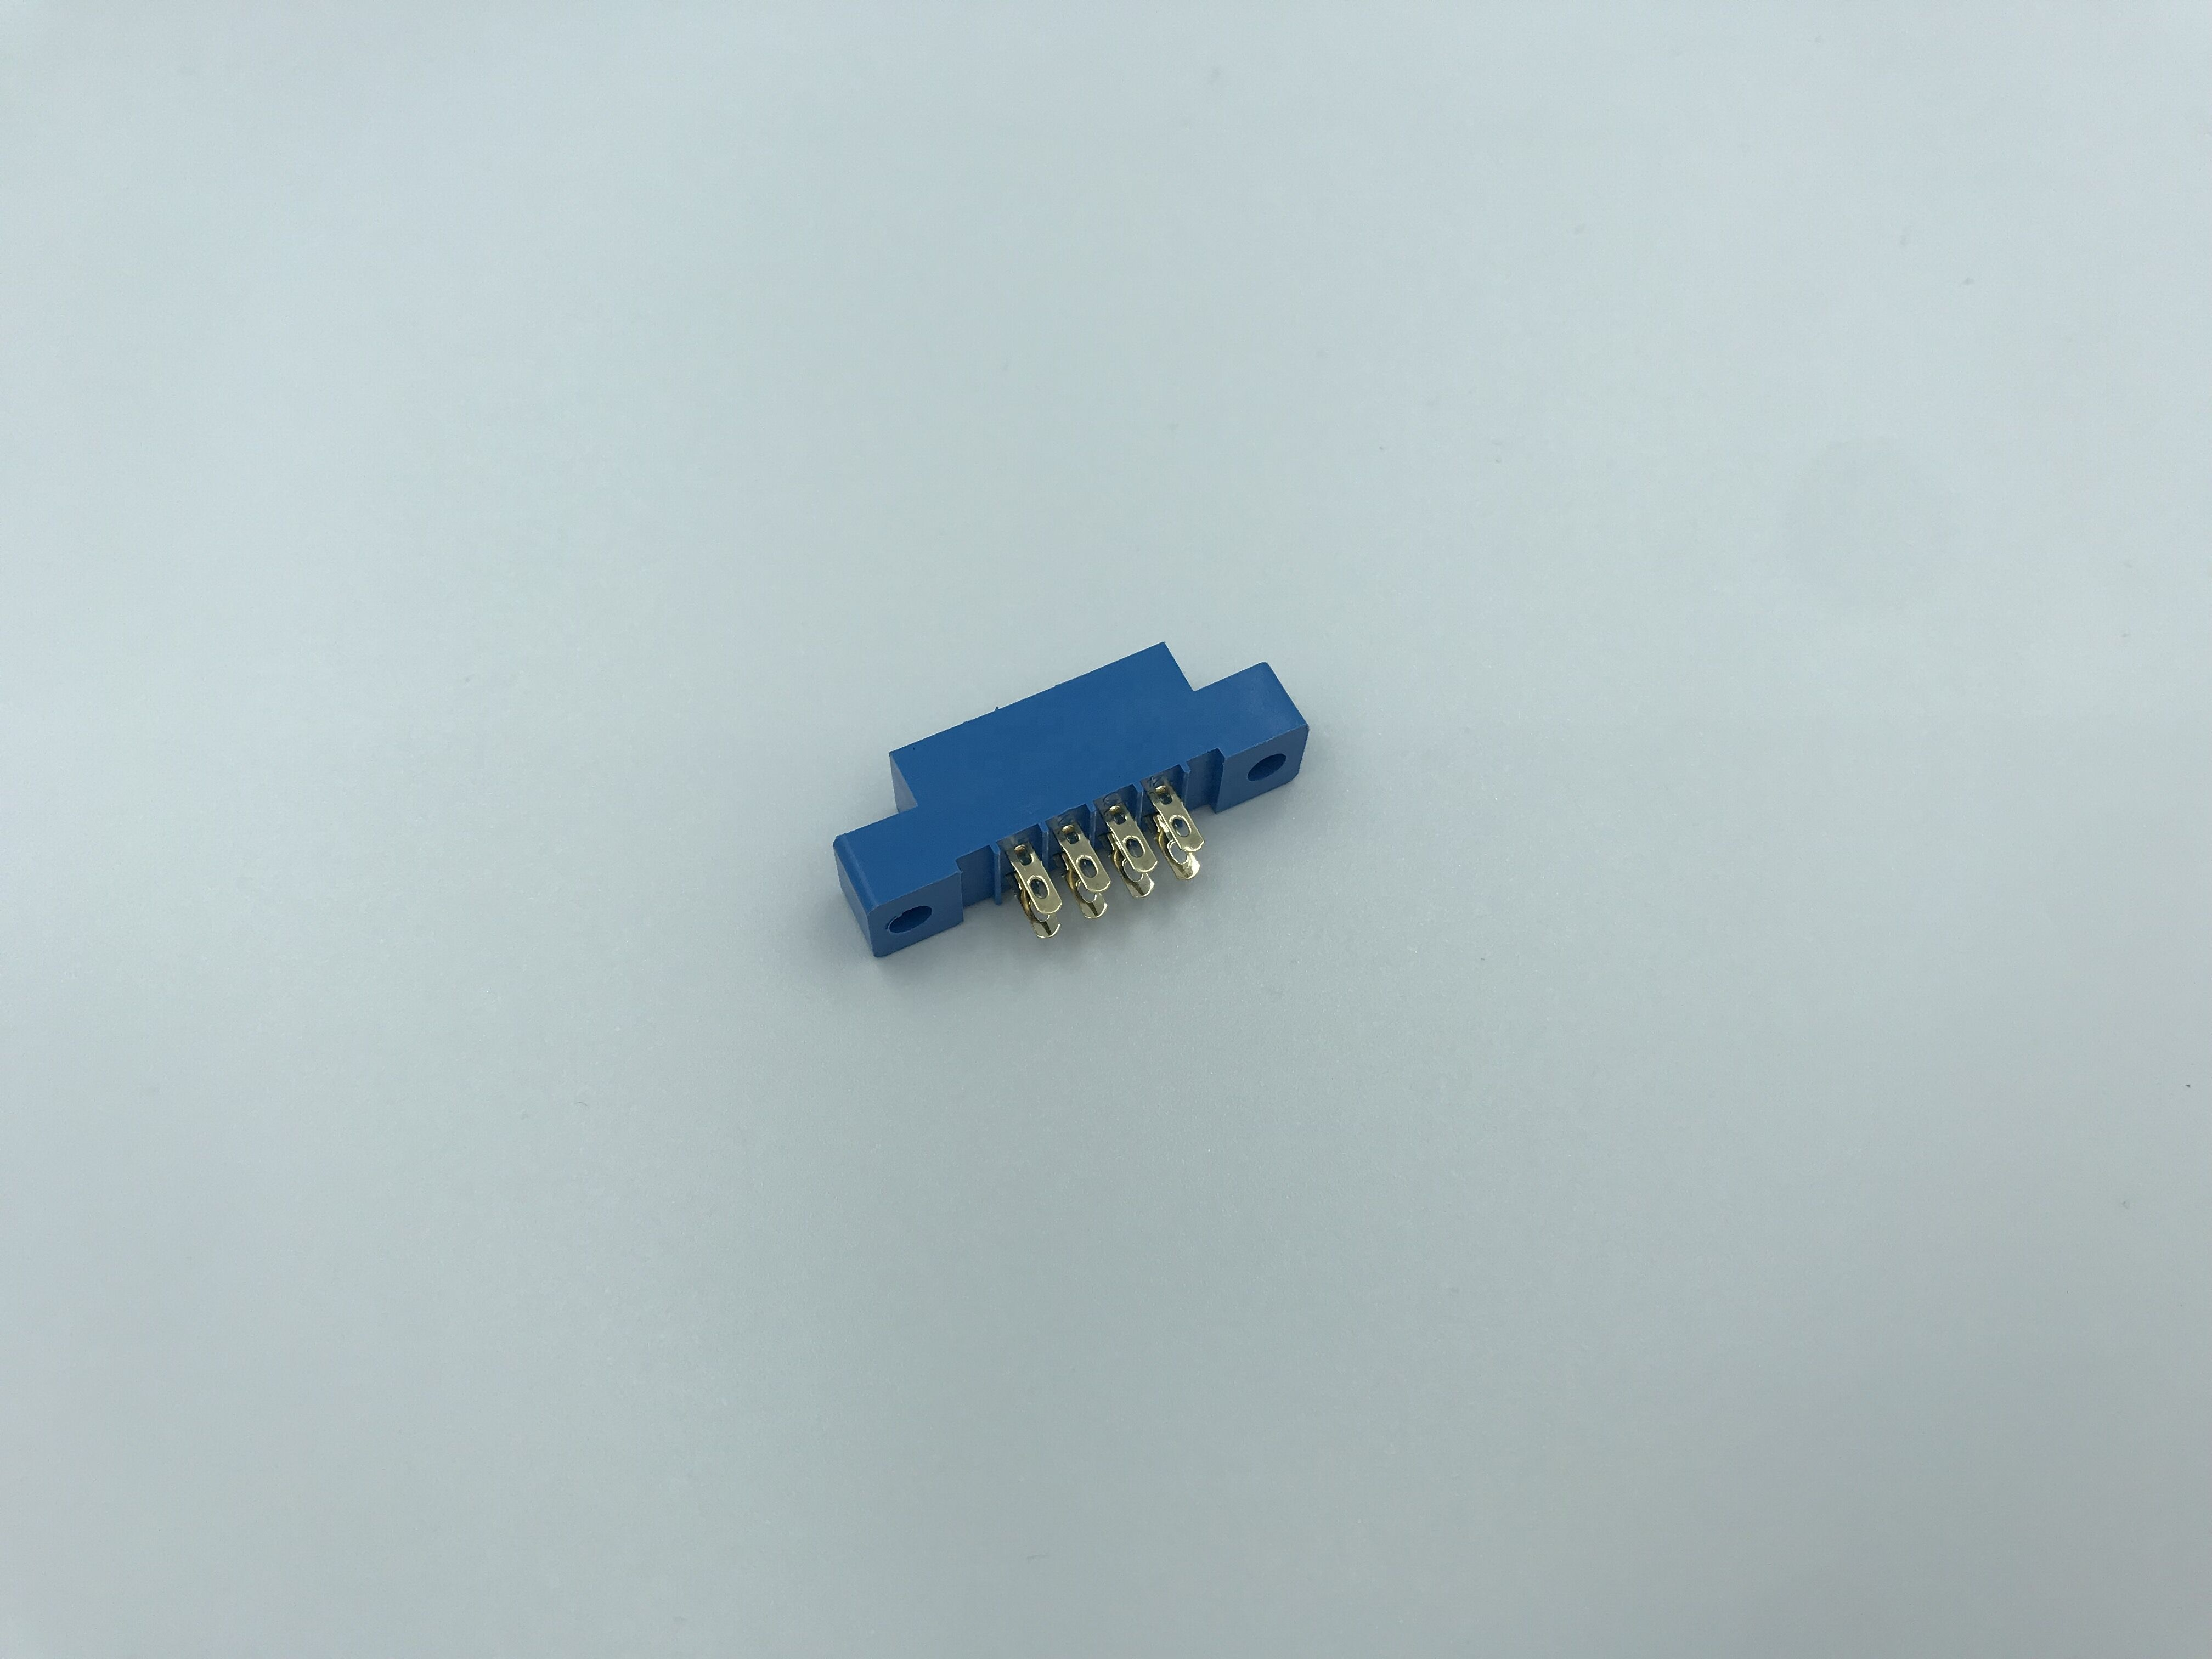 3.96mm Edge card connector solder type